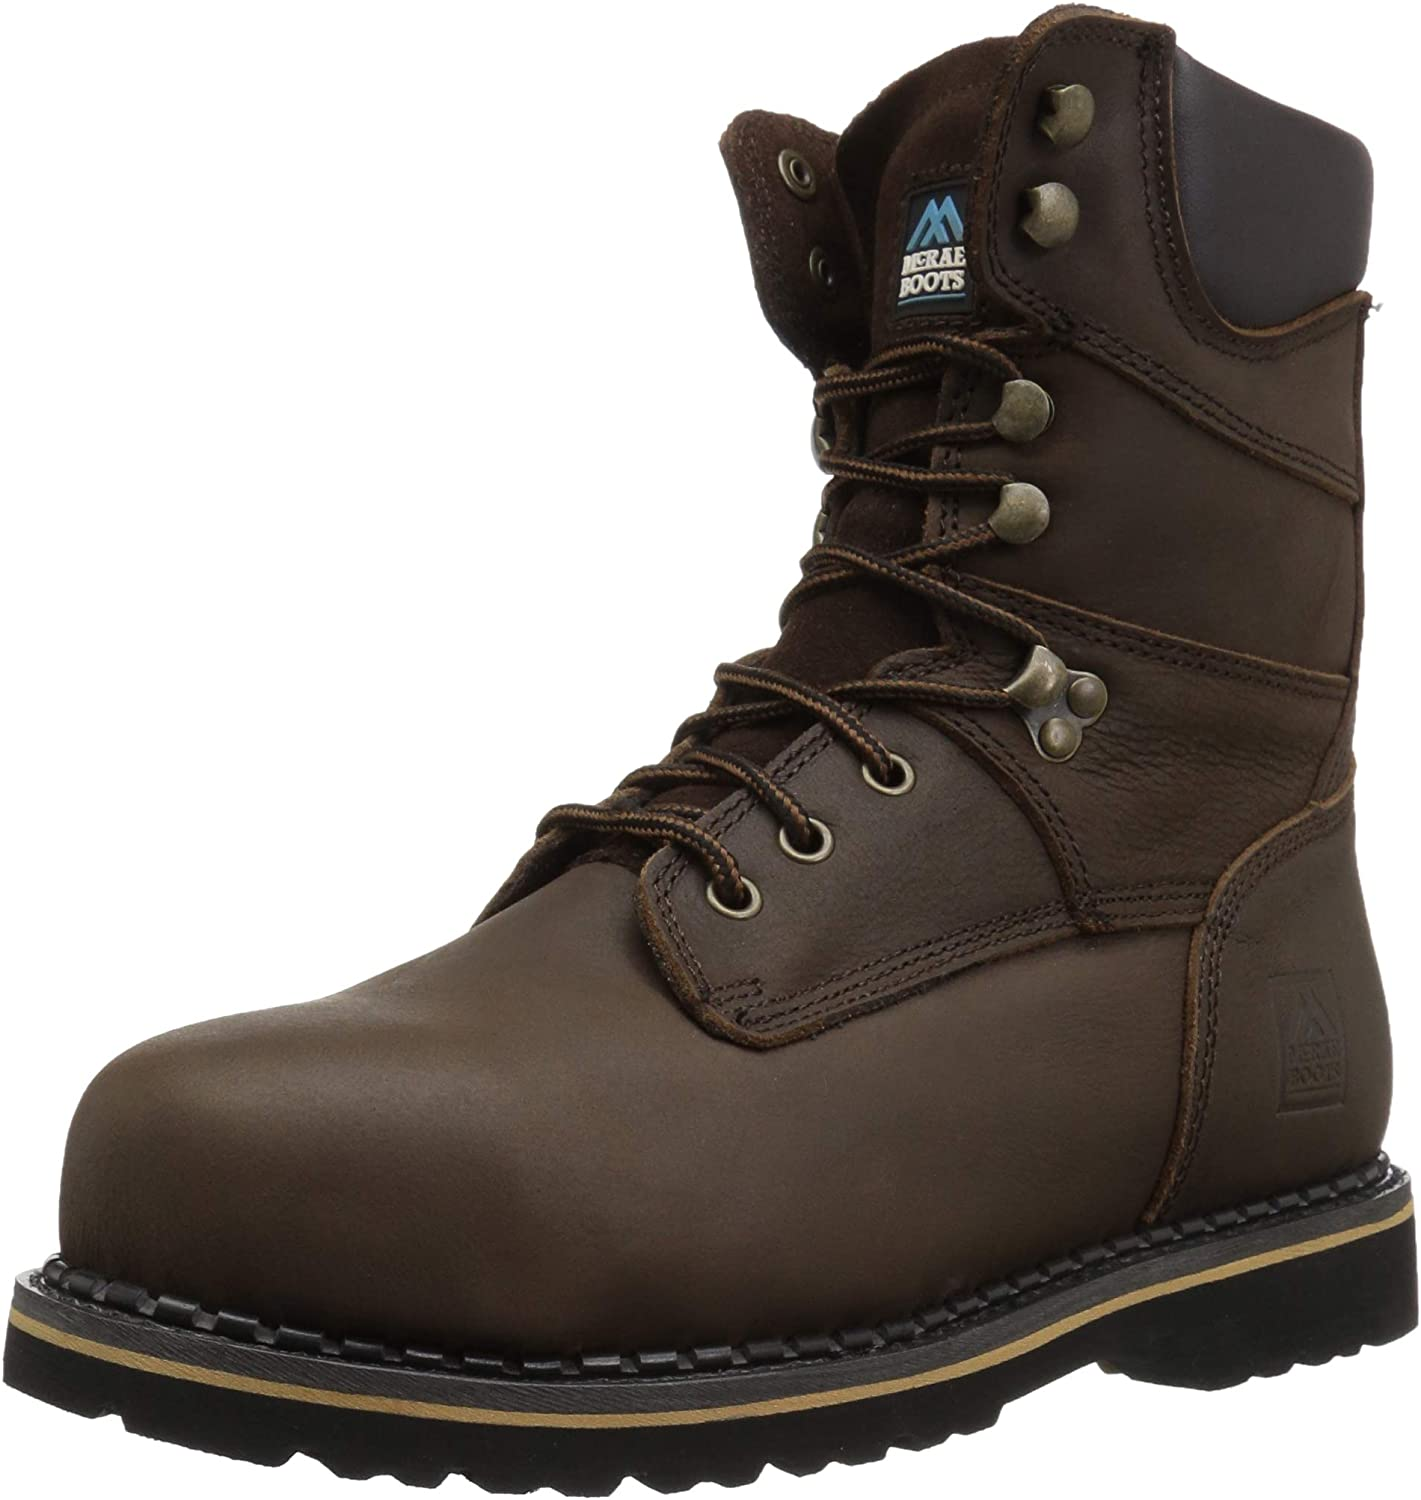 Mcrae Mr88344 Men's Full Grain Leather Work Boot M8 Brown UK -7M